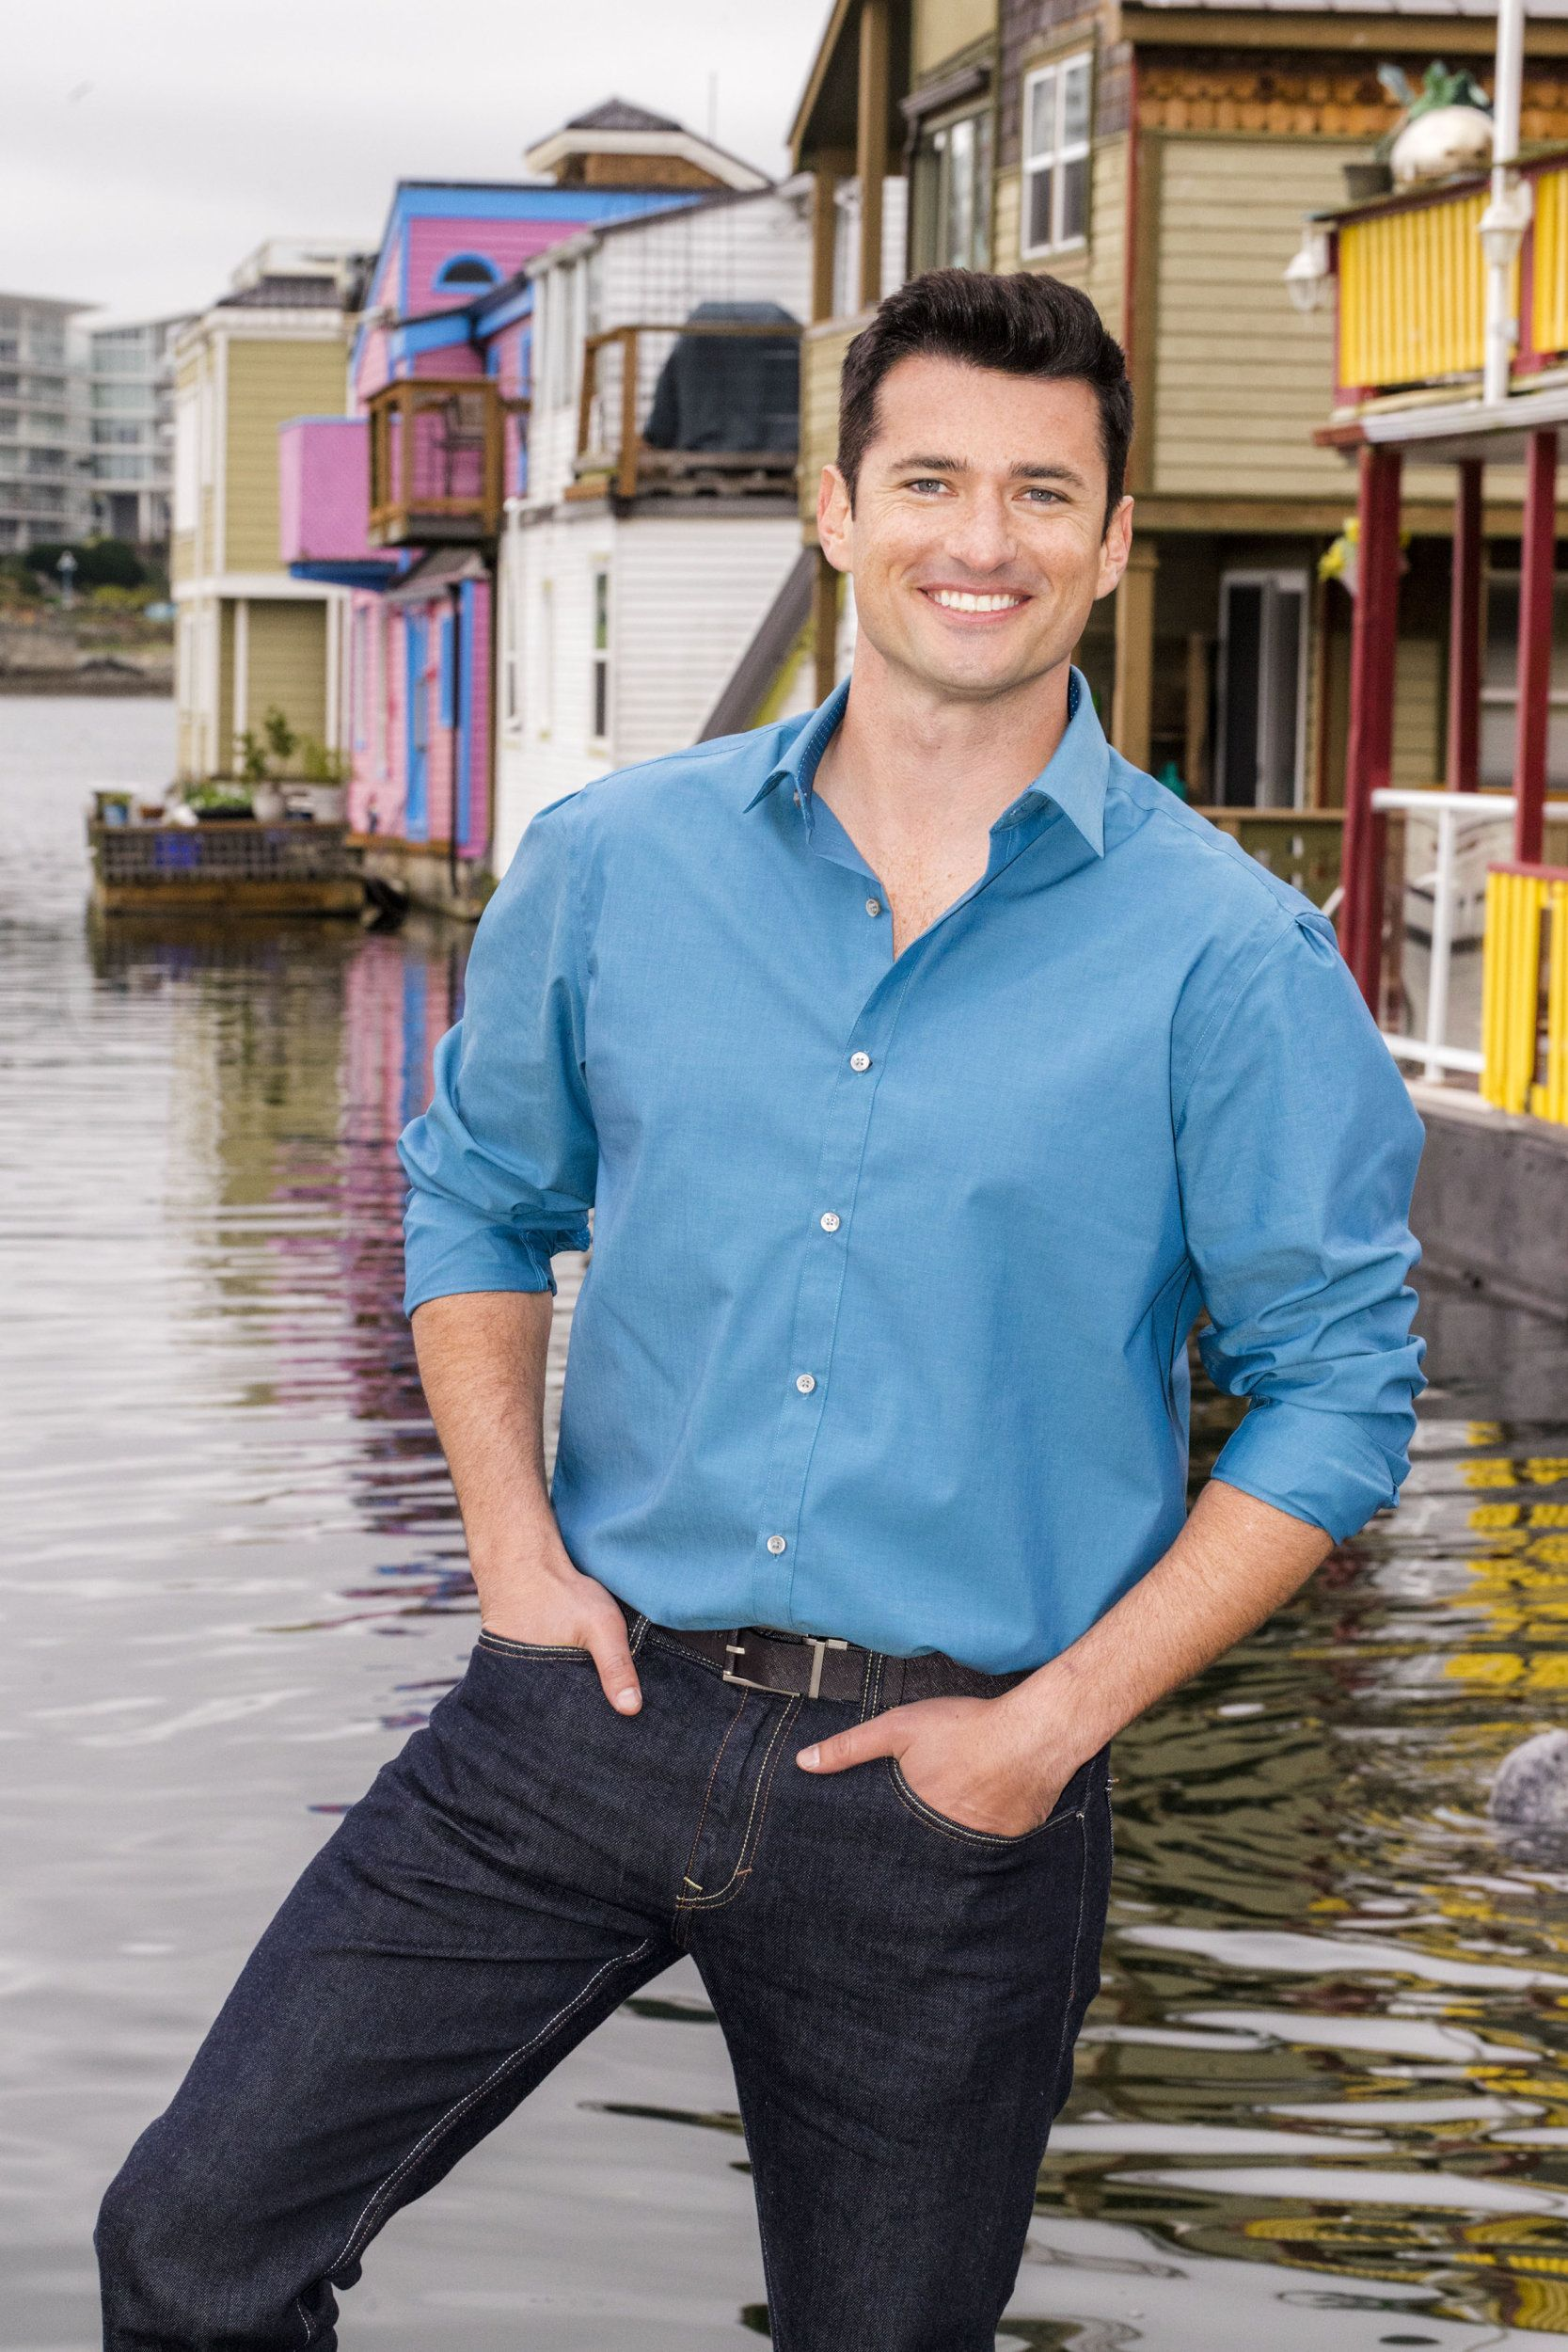 Find out more about the cast of the Hallmark Movies